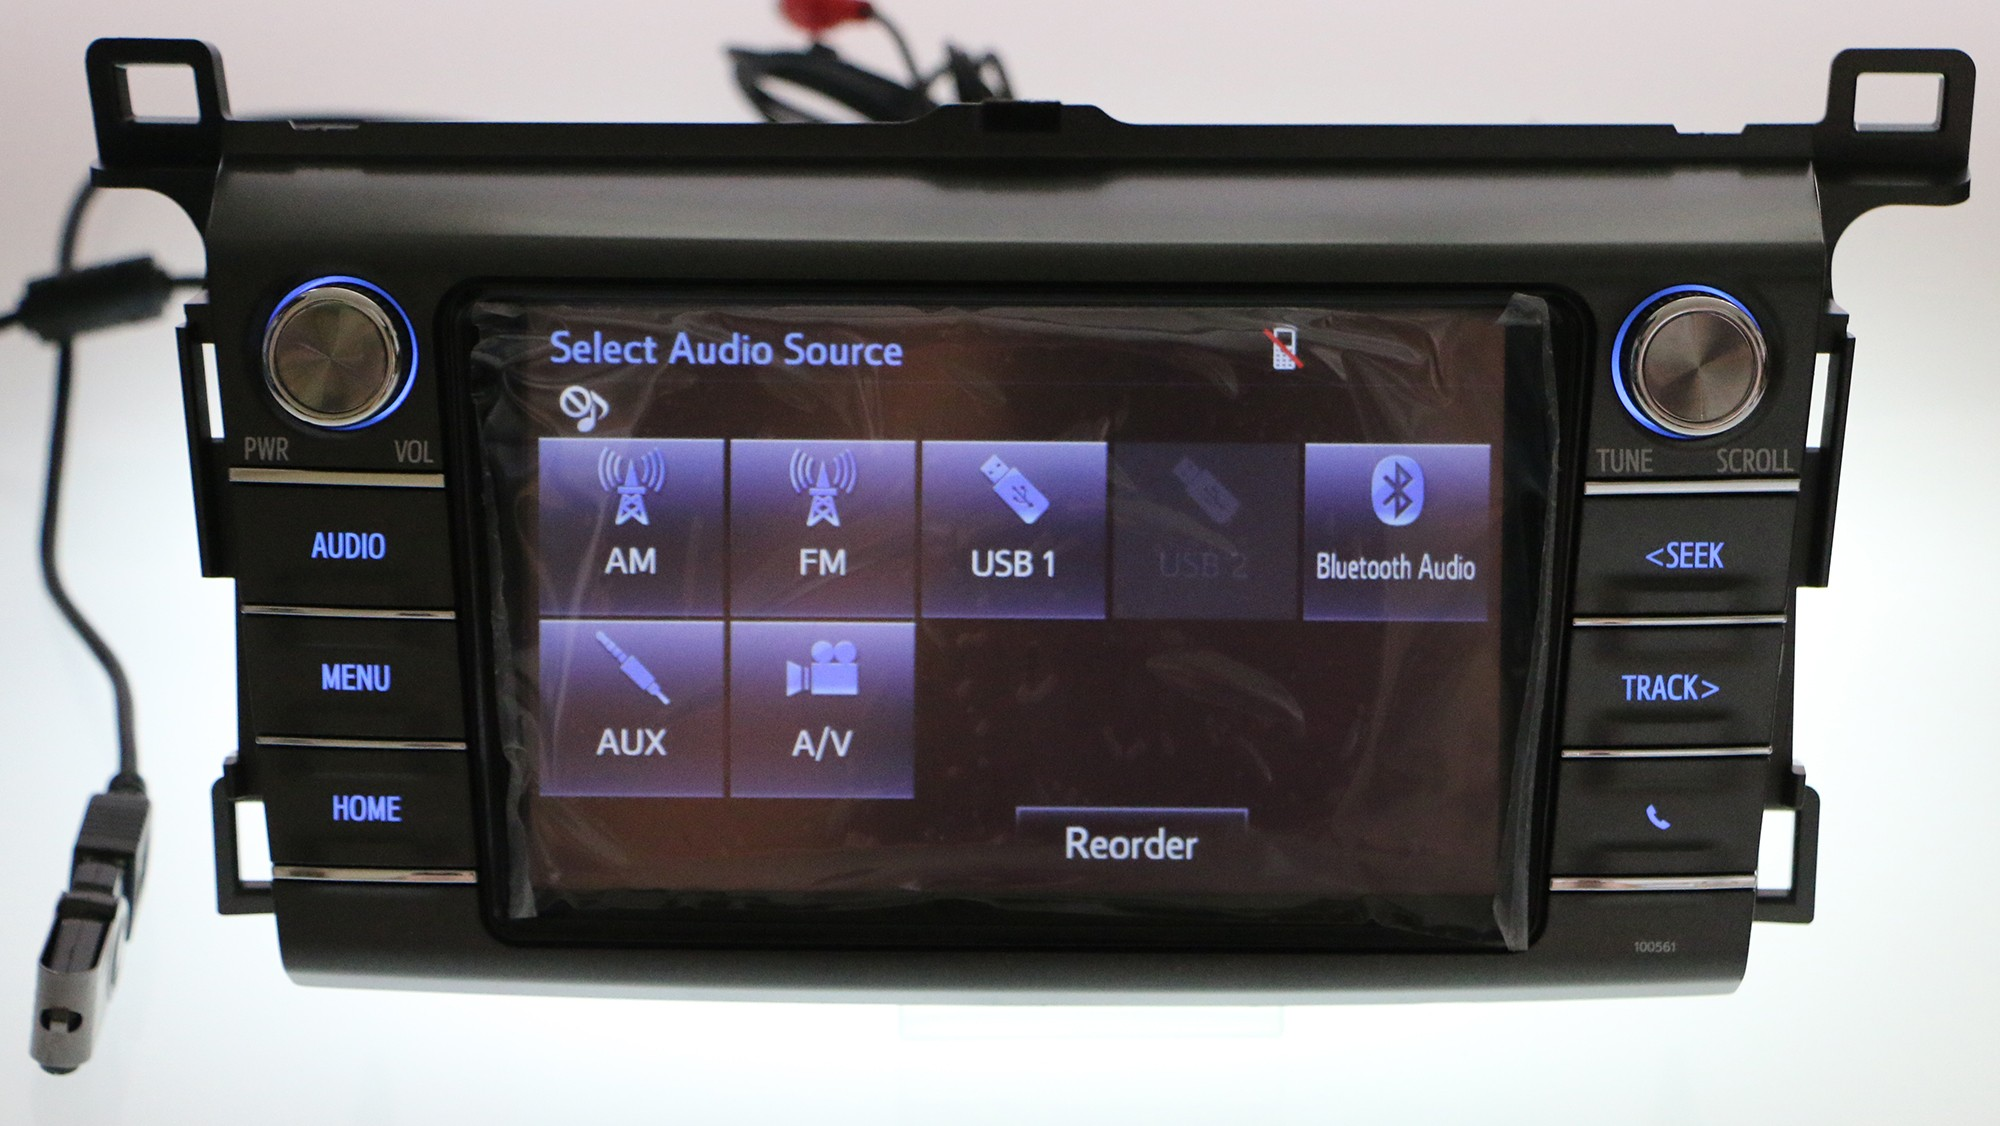 Toyota RAV4 Owners Manual: Registering a bluetoothaudio player for thefirst time